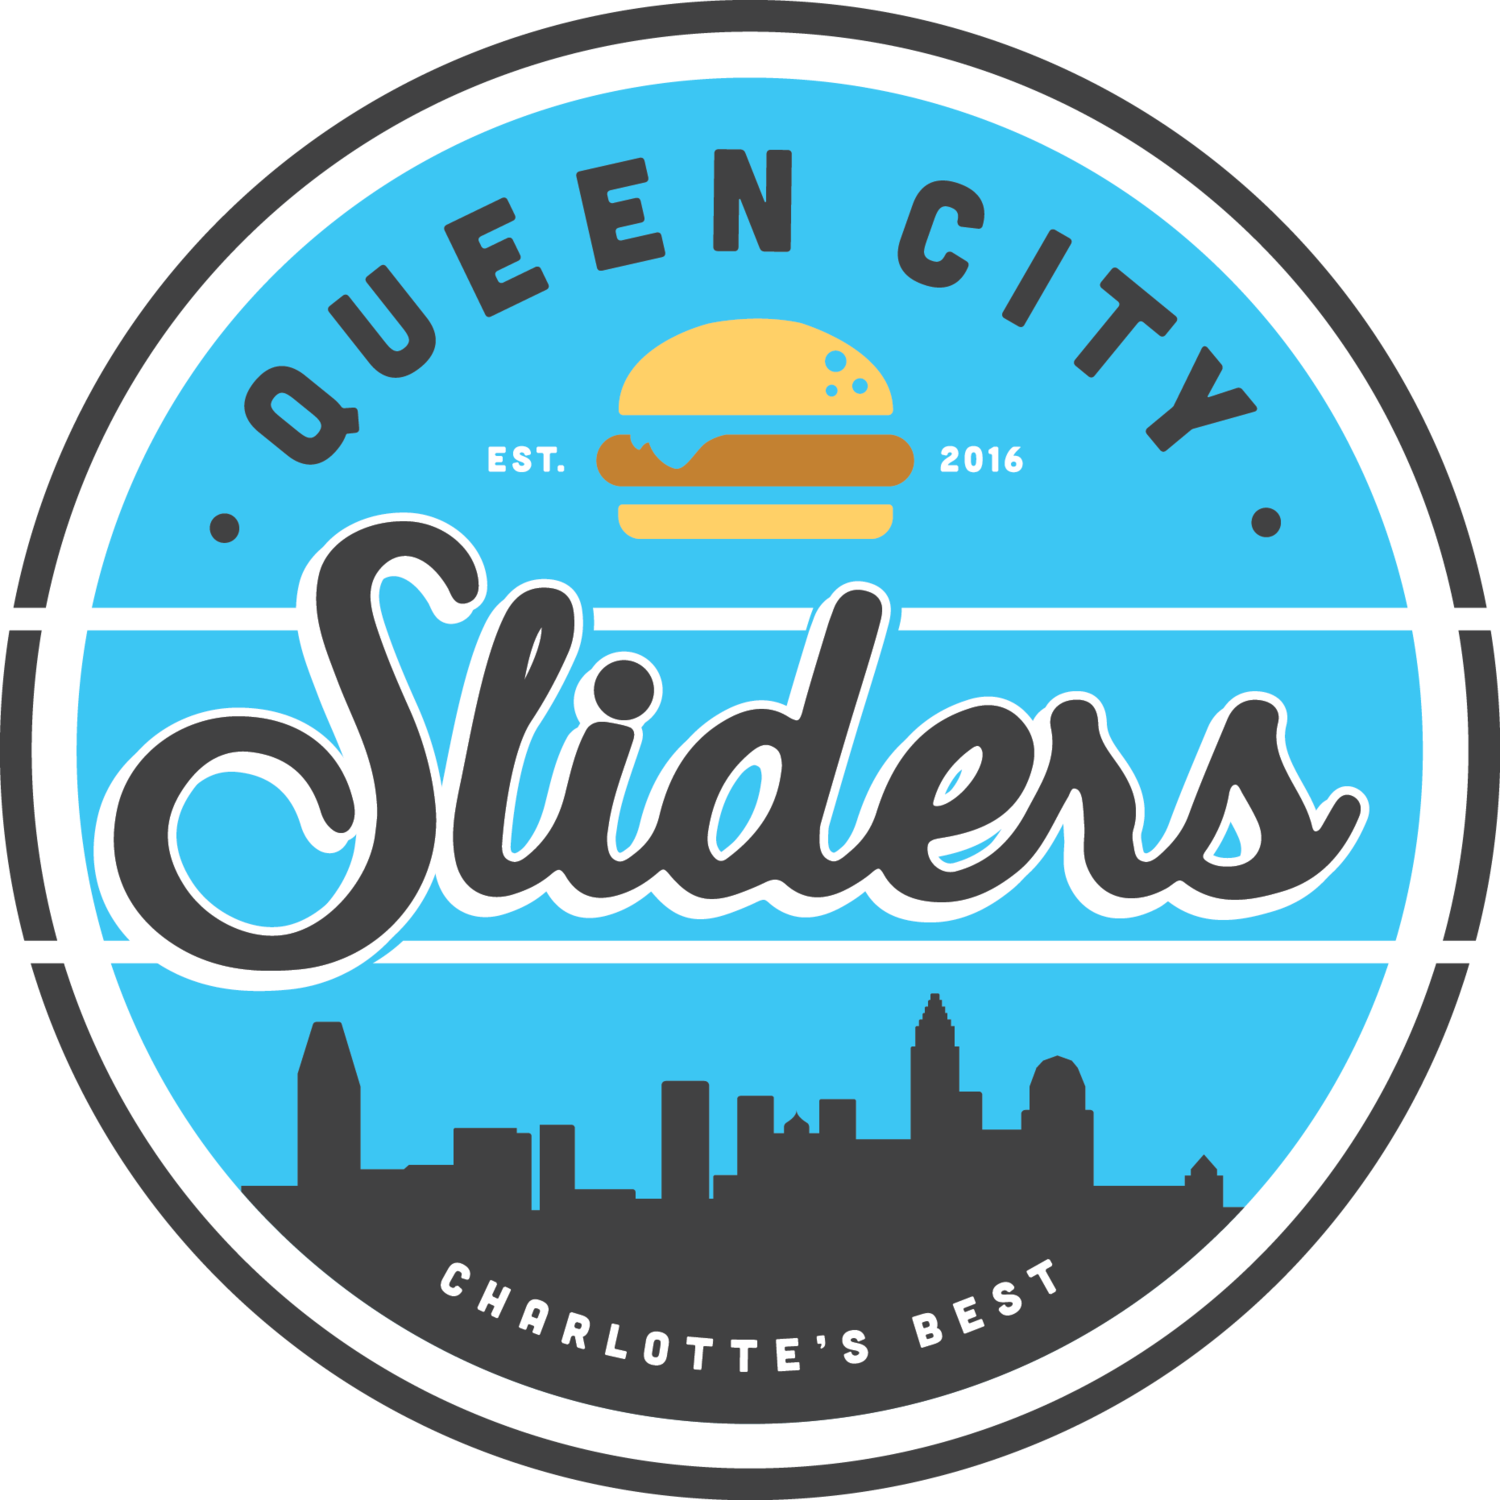 Queen City Sliders